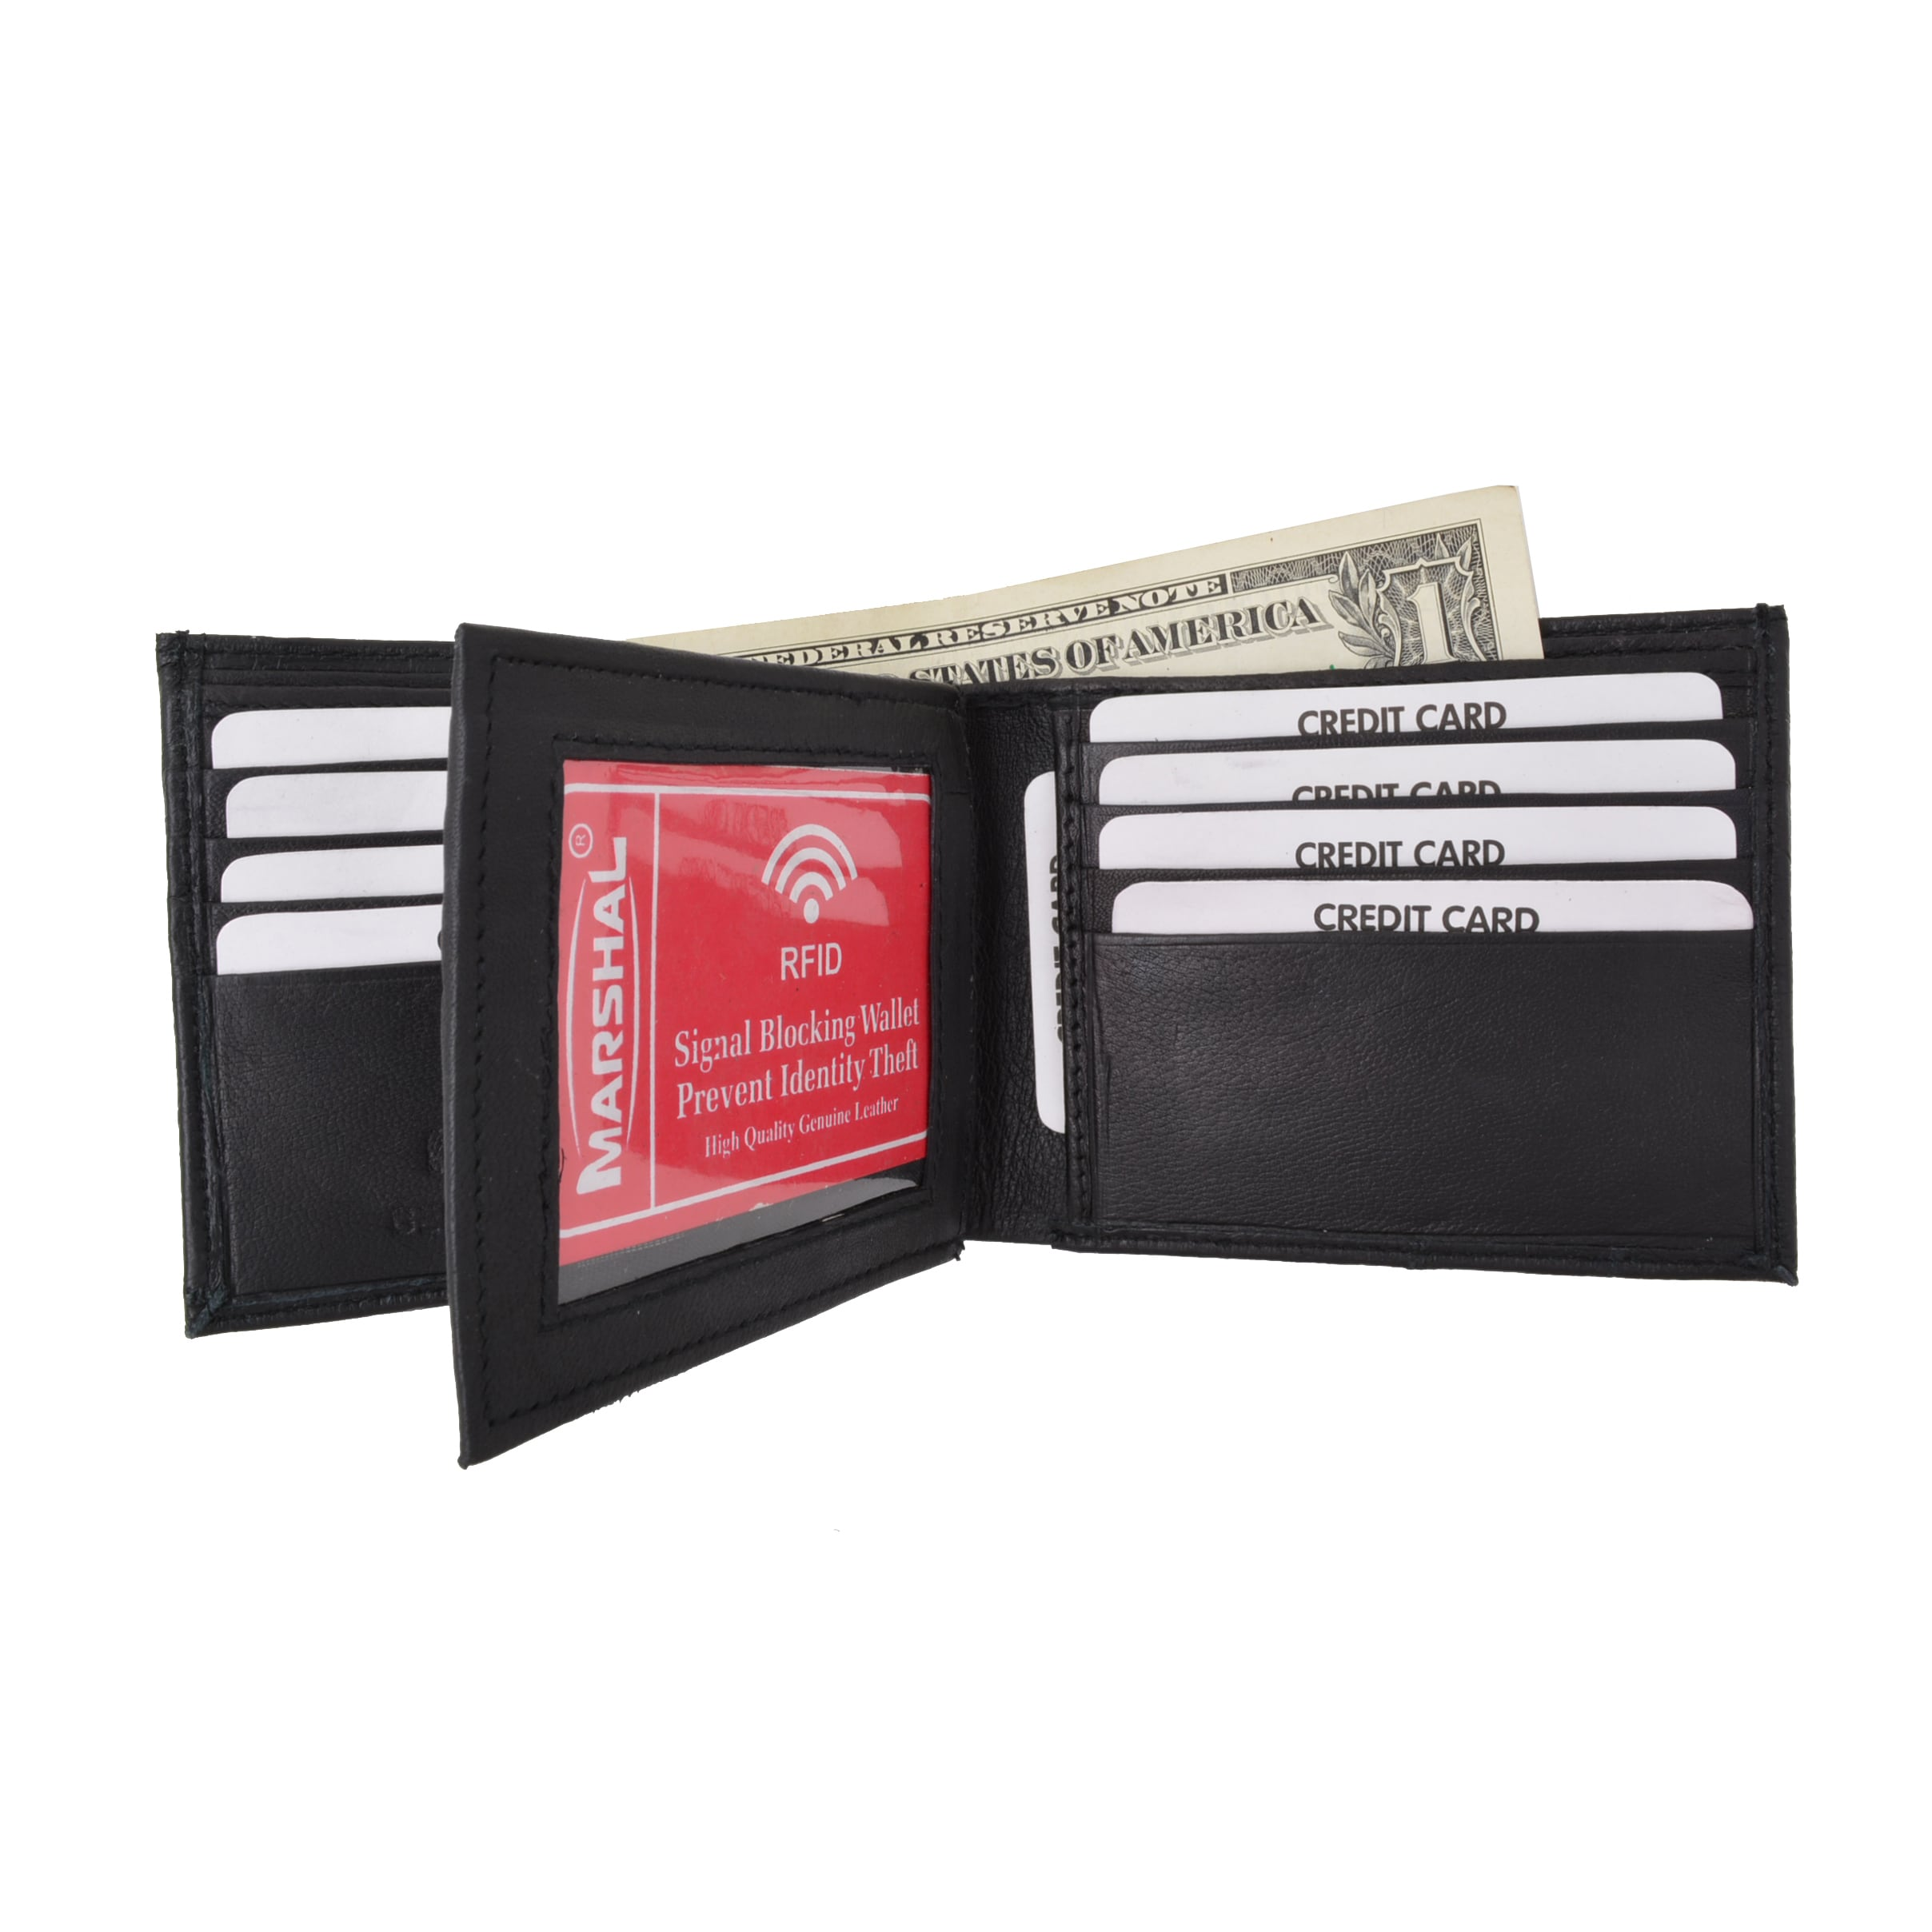 Lambskin Soft Leather Center ID and Credit Card Trifold Wallet by Marshal